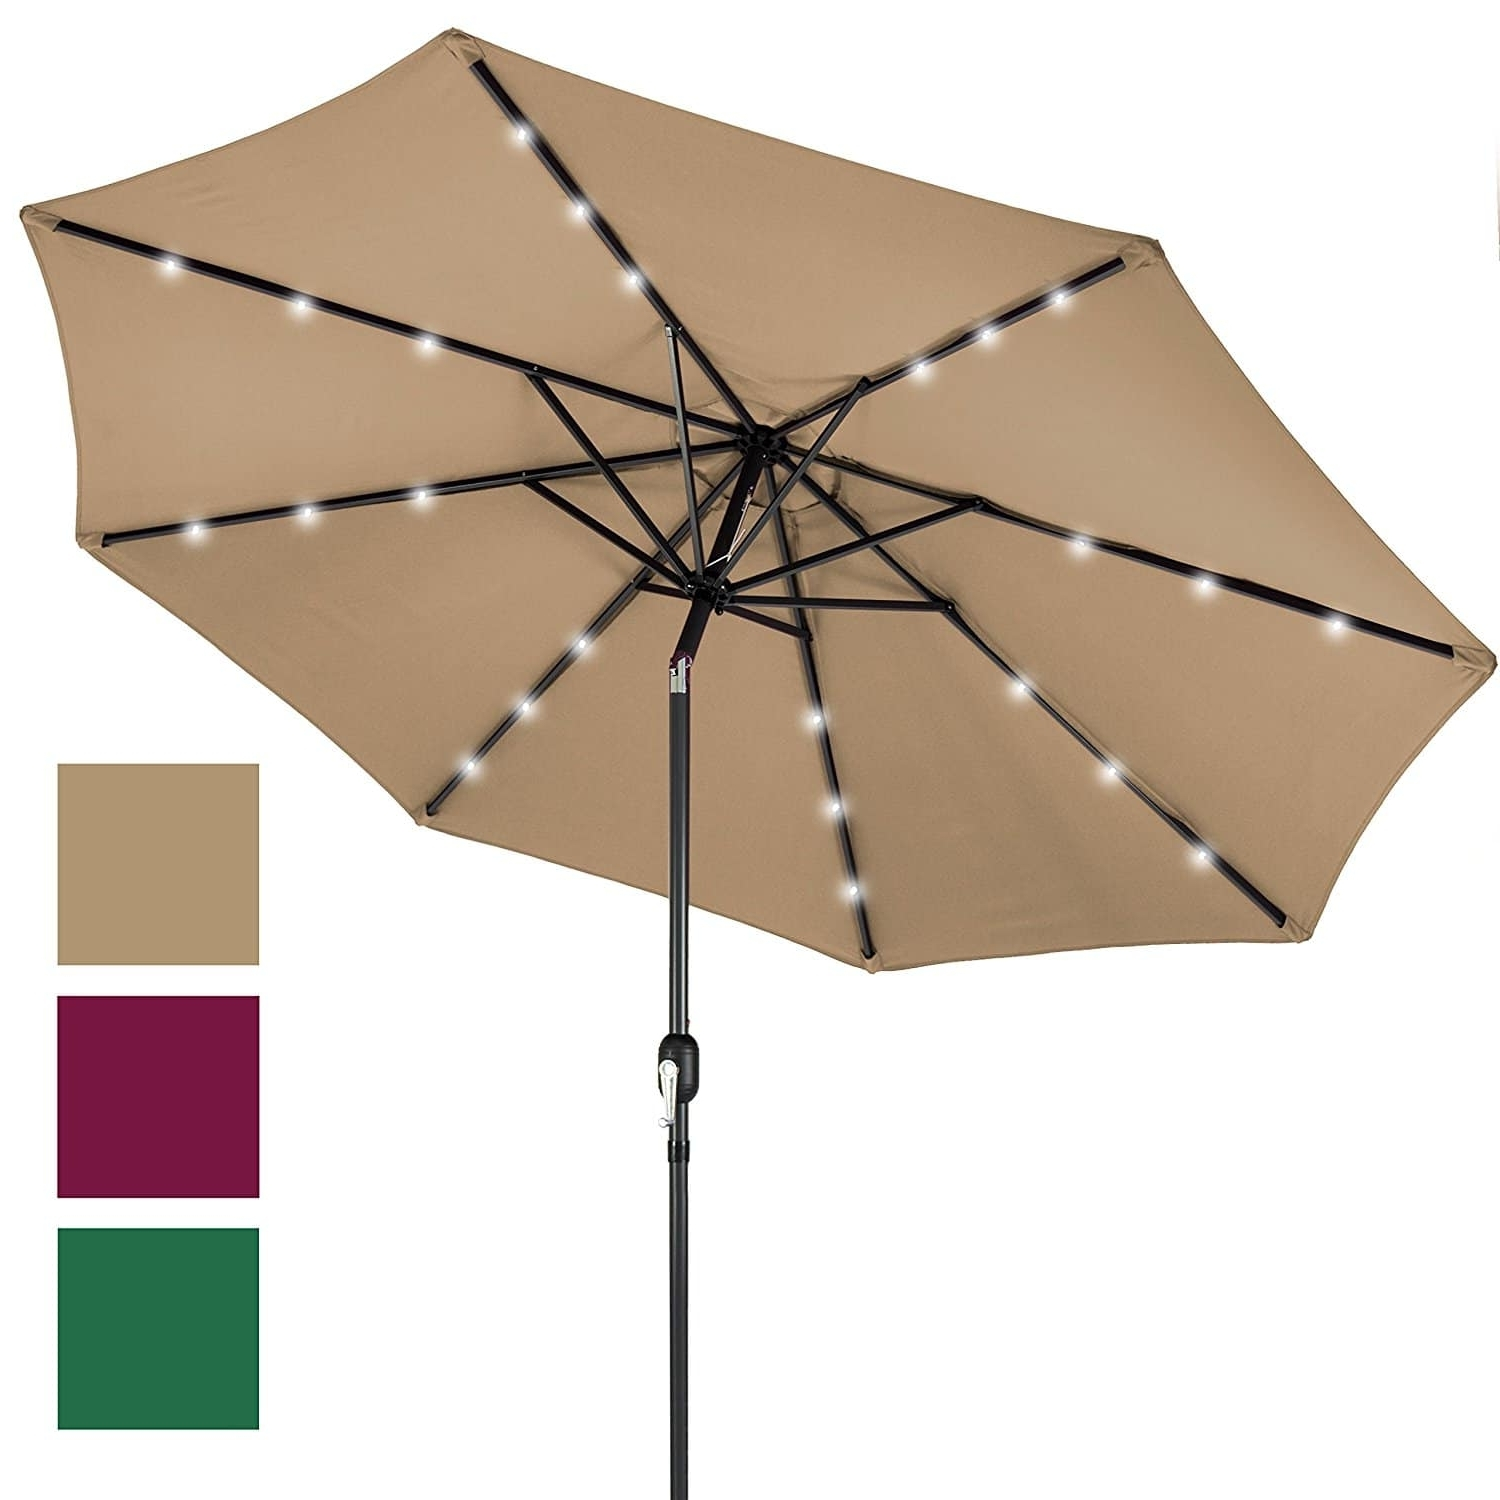 Trendy Lighted Patio Umbrellas Within Top 10 Best Patio Umbrellas In 2018 – Topreviewproducts (View 15 of 20)